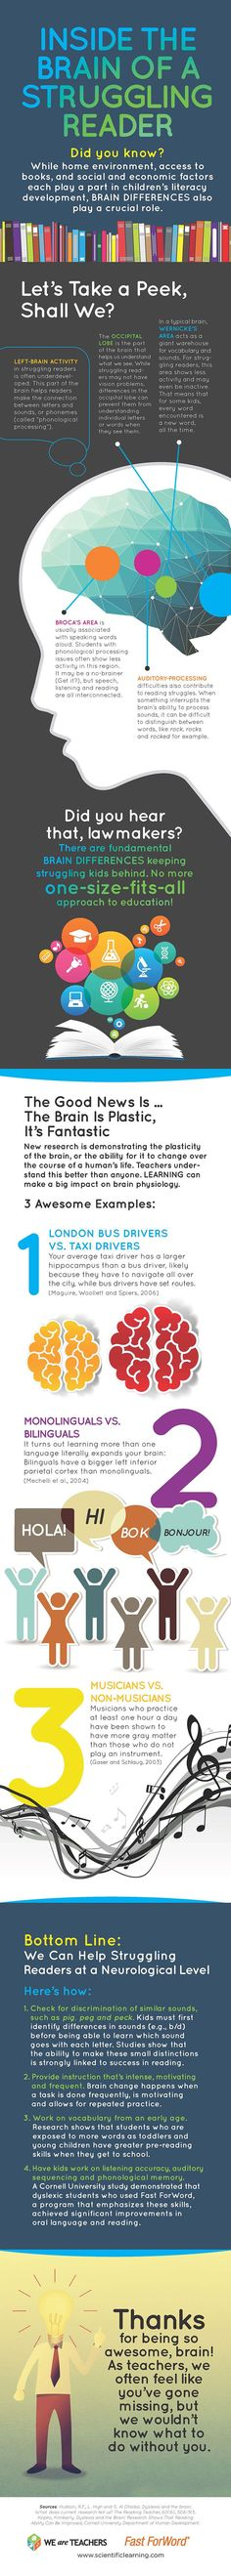 #Infographic: Inside the Brain of a Struggling Reader #WeAreTeachers